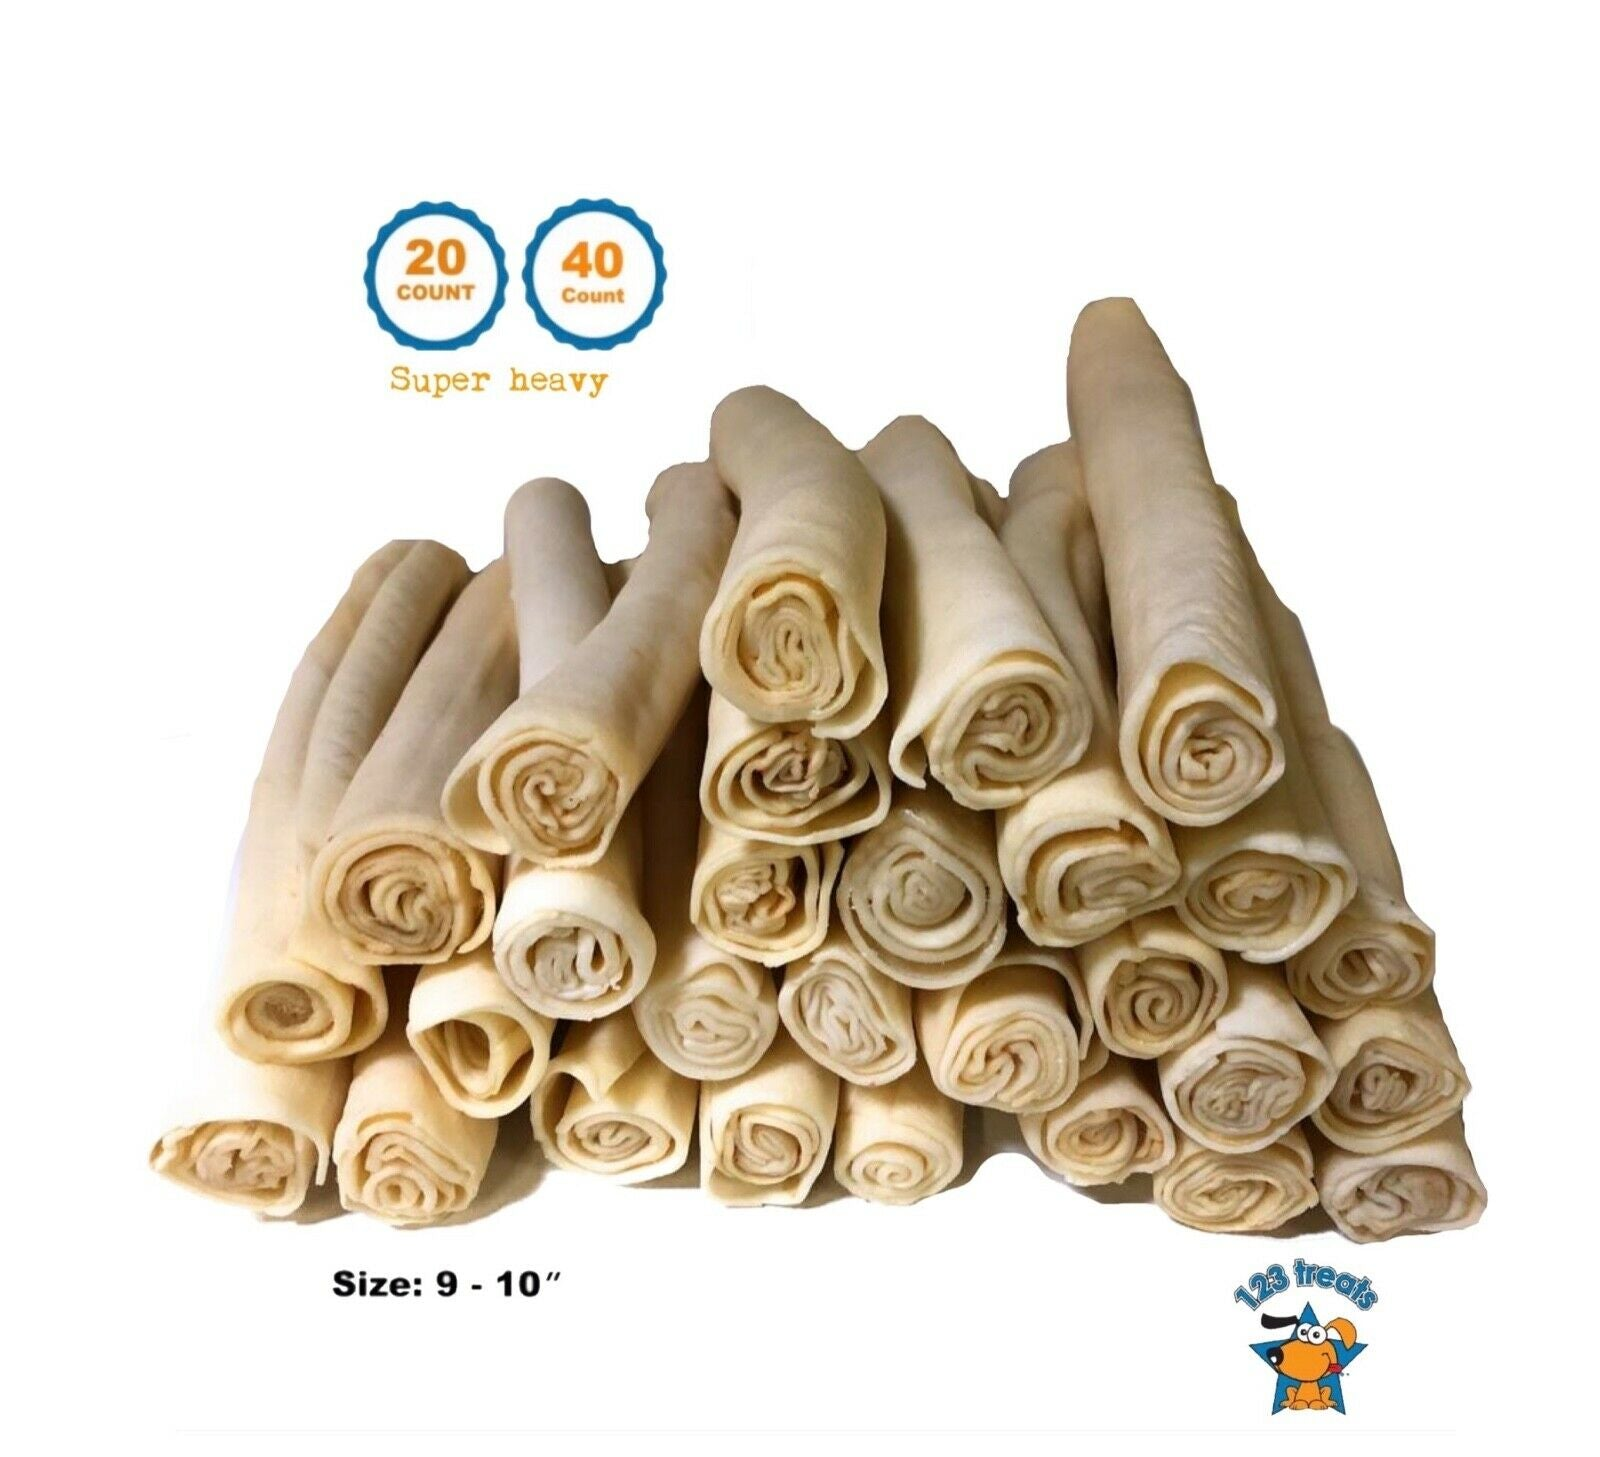 9 inches Rawhide Retriever Roll | Thick retriever roll for dogs (20 or 40 Count)